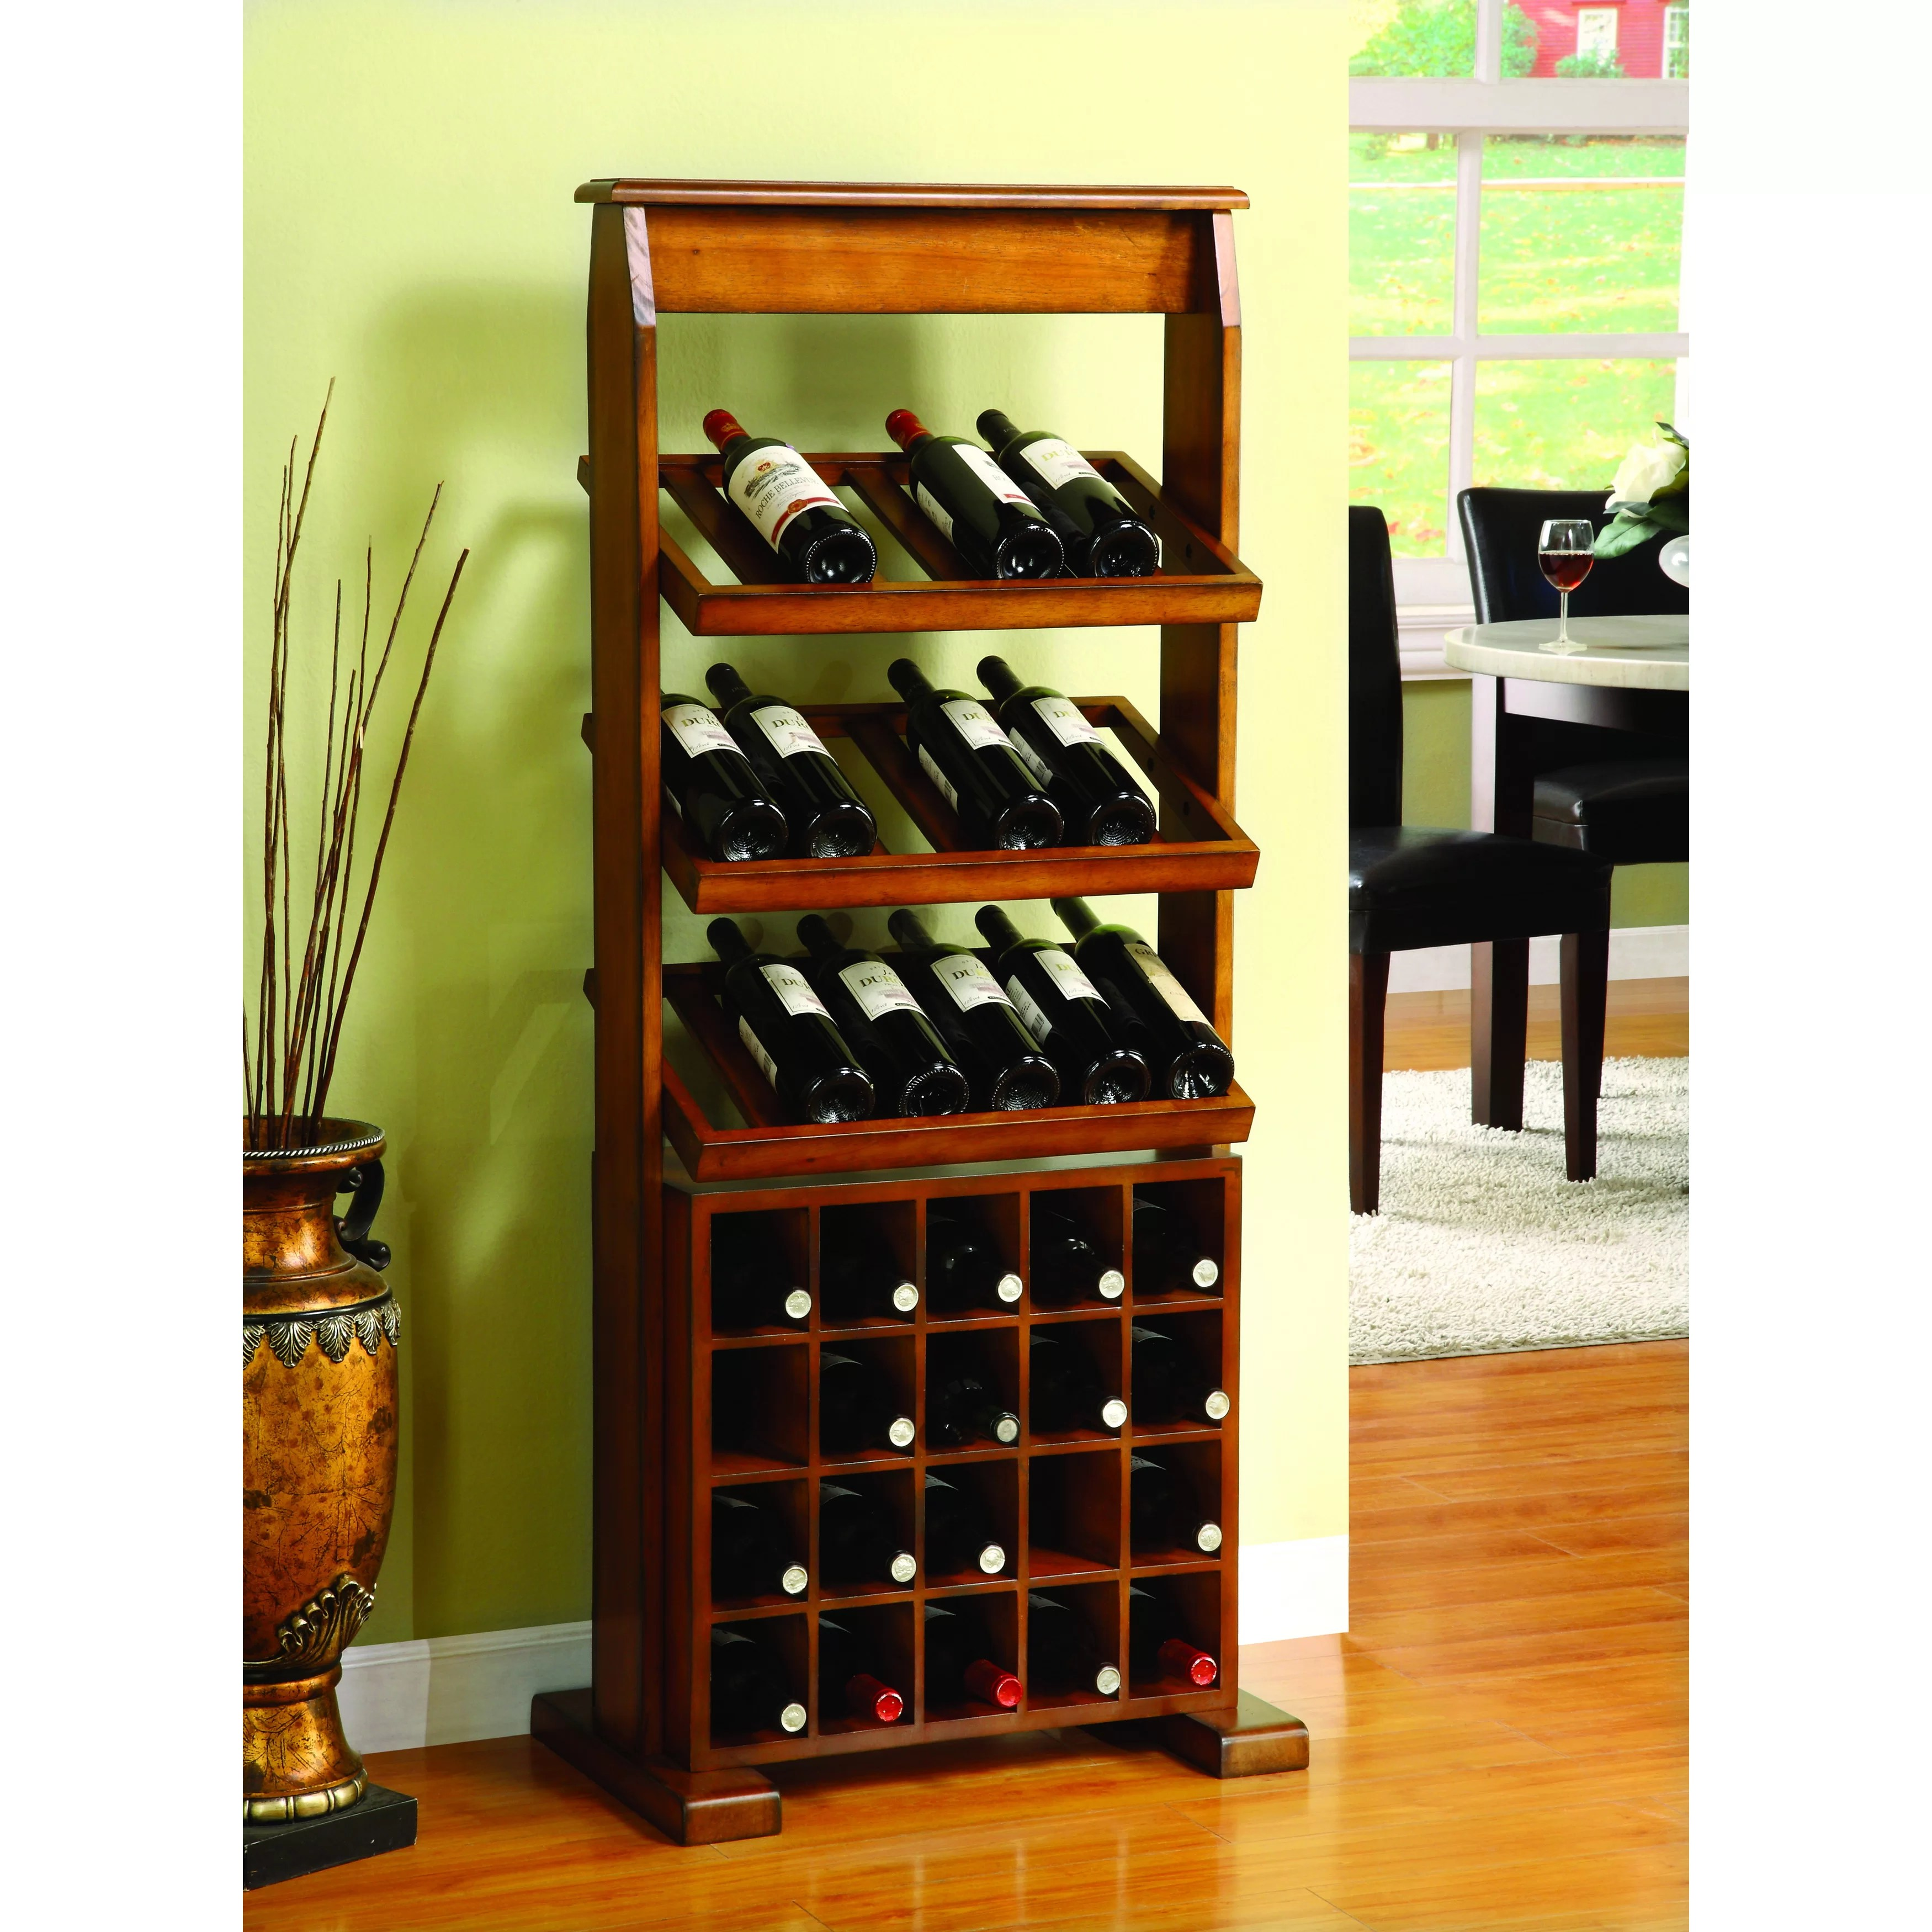 In Floor Wine Storage Darby Home Co Medeley 38 Bottle Floor Wine Rack And Reviews